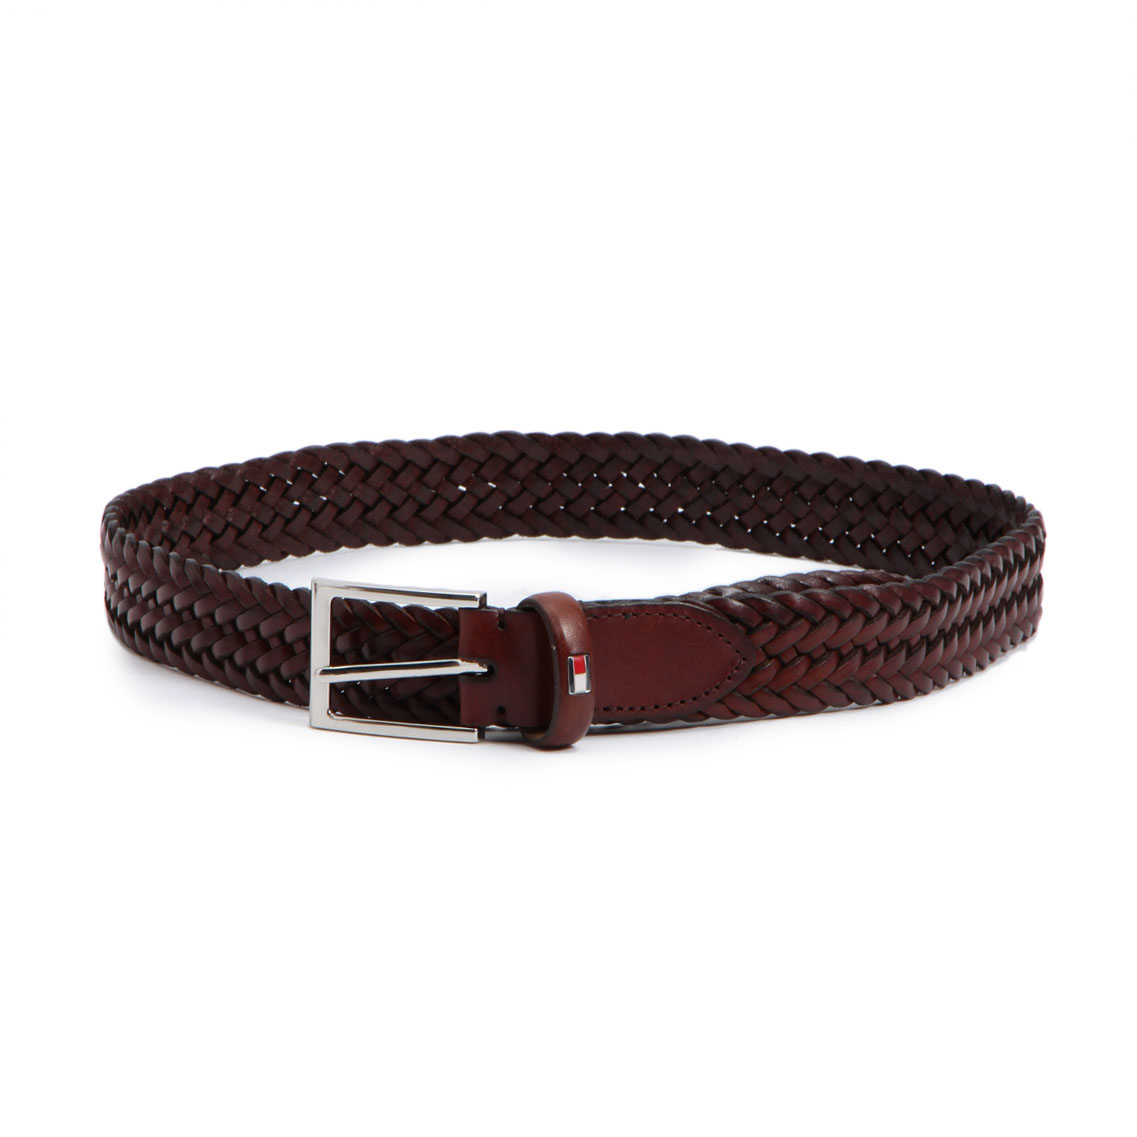 NEW ALMERICO BELT